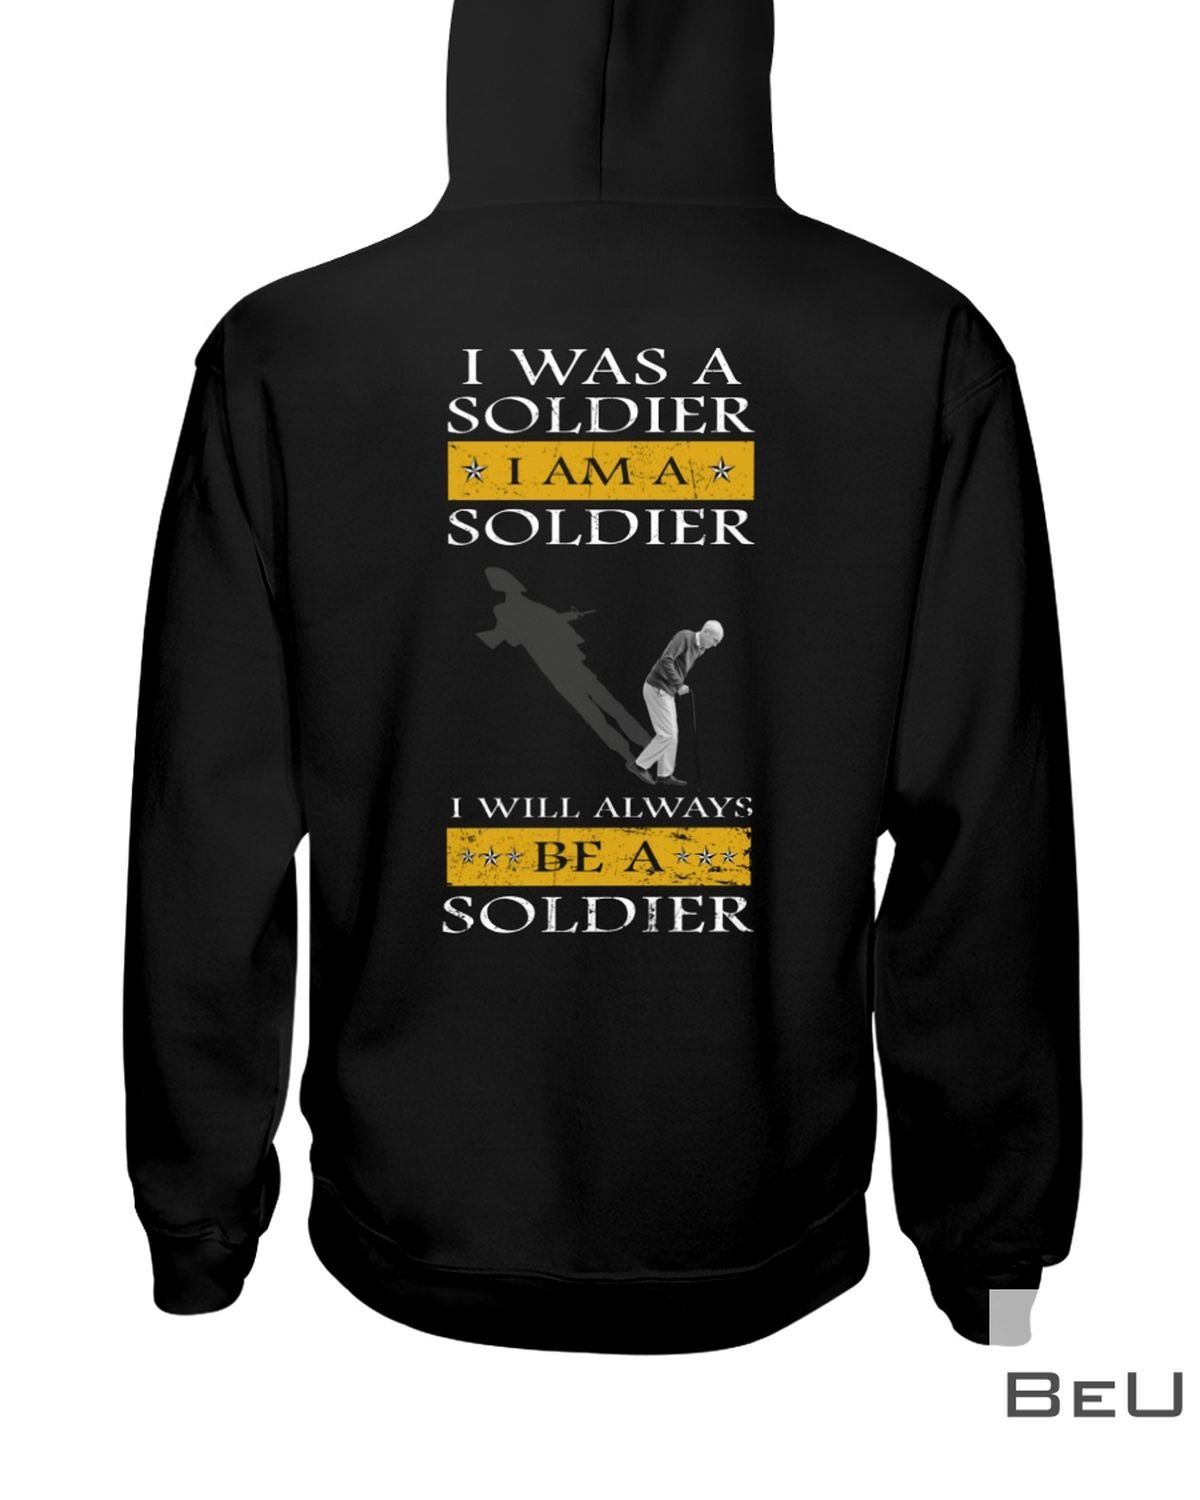 I Was A Soldier I Will Always Be A Soldier Shirtz